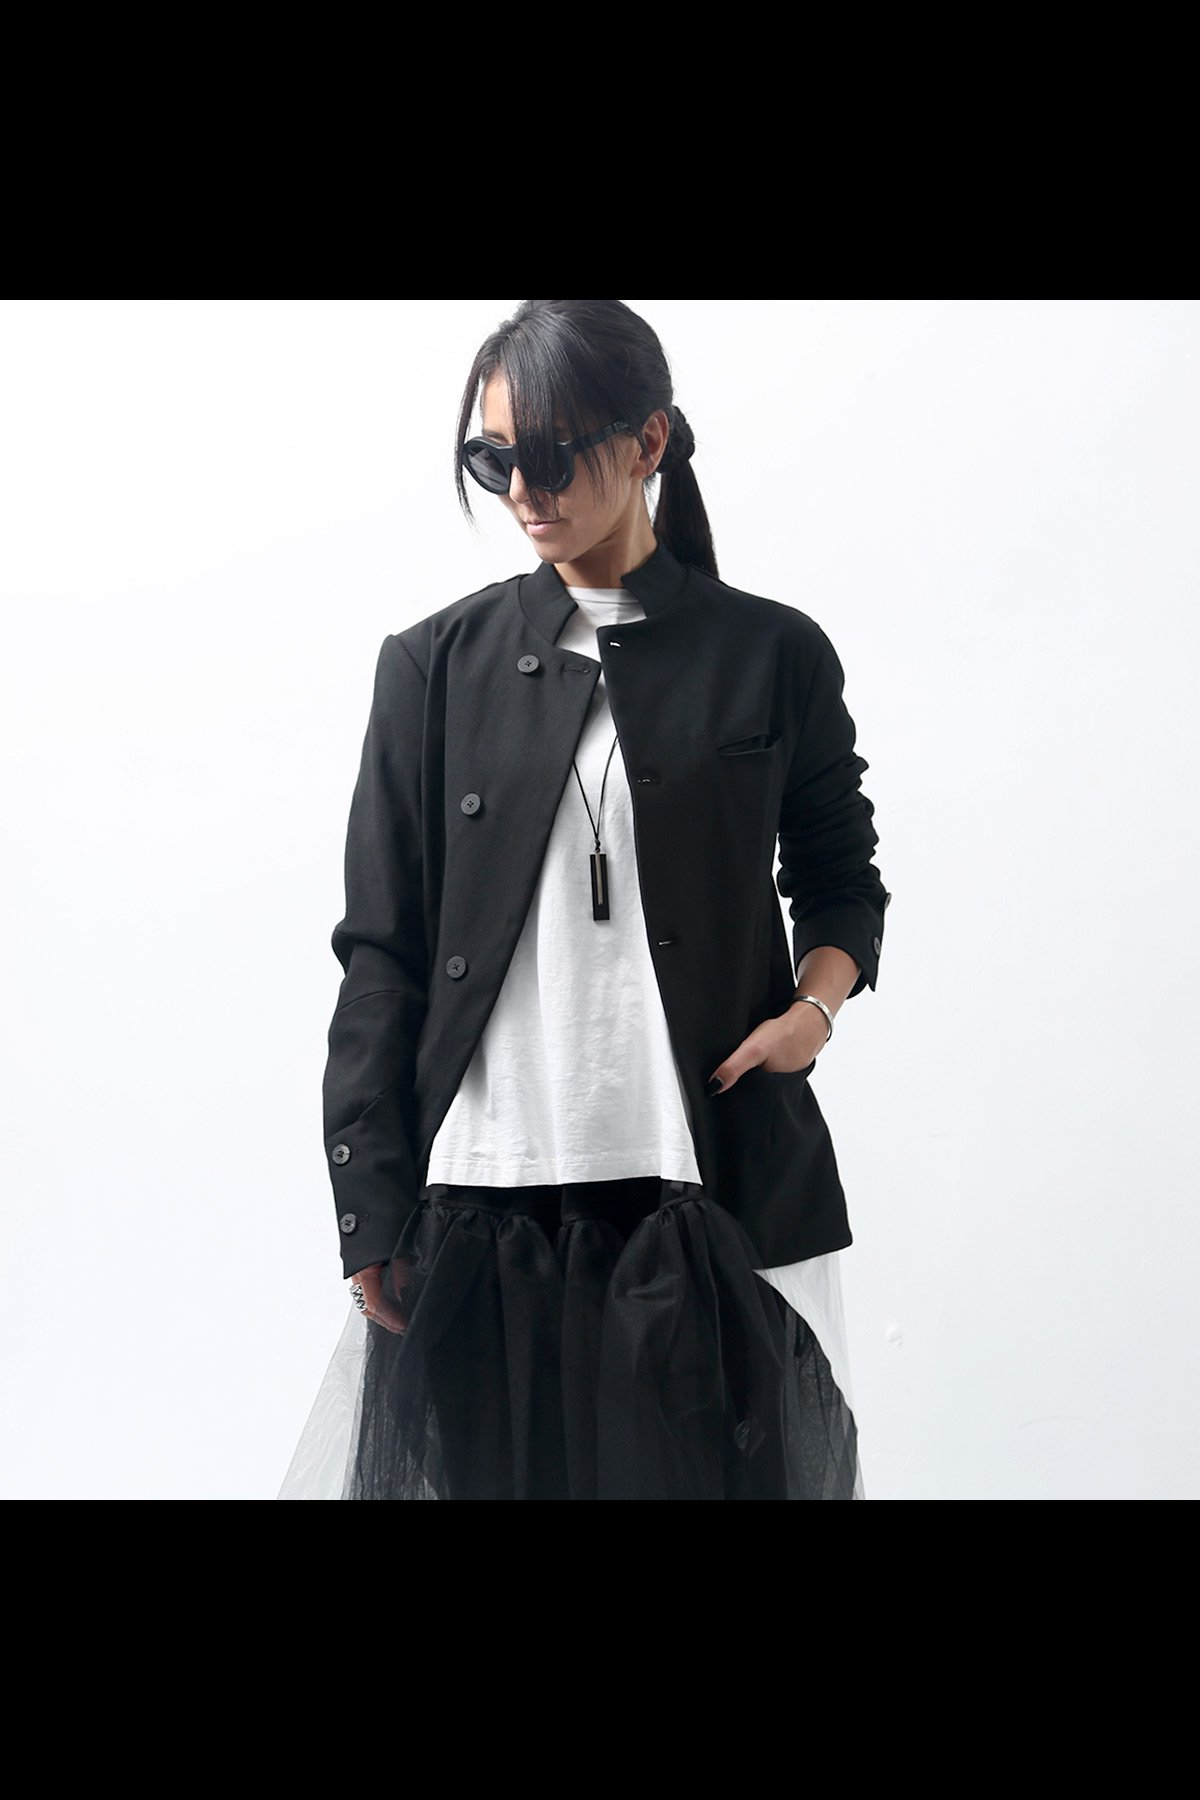 <img class='new_mark_img1' src='https://img.shop-pro.jp/img/new/icons8.gif' style='border:none;display:inline;margin:0px;padding:0px;width:auto;' />STAND COLLAR STRETCH JACKET J25*1_BLACK